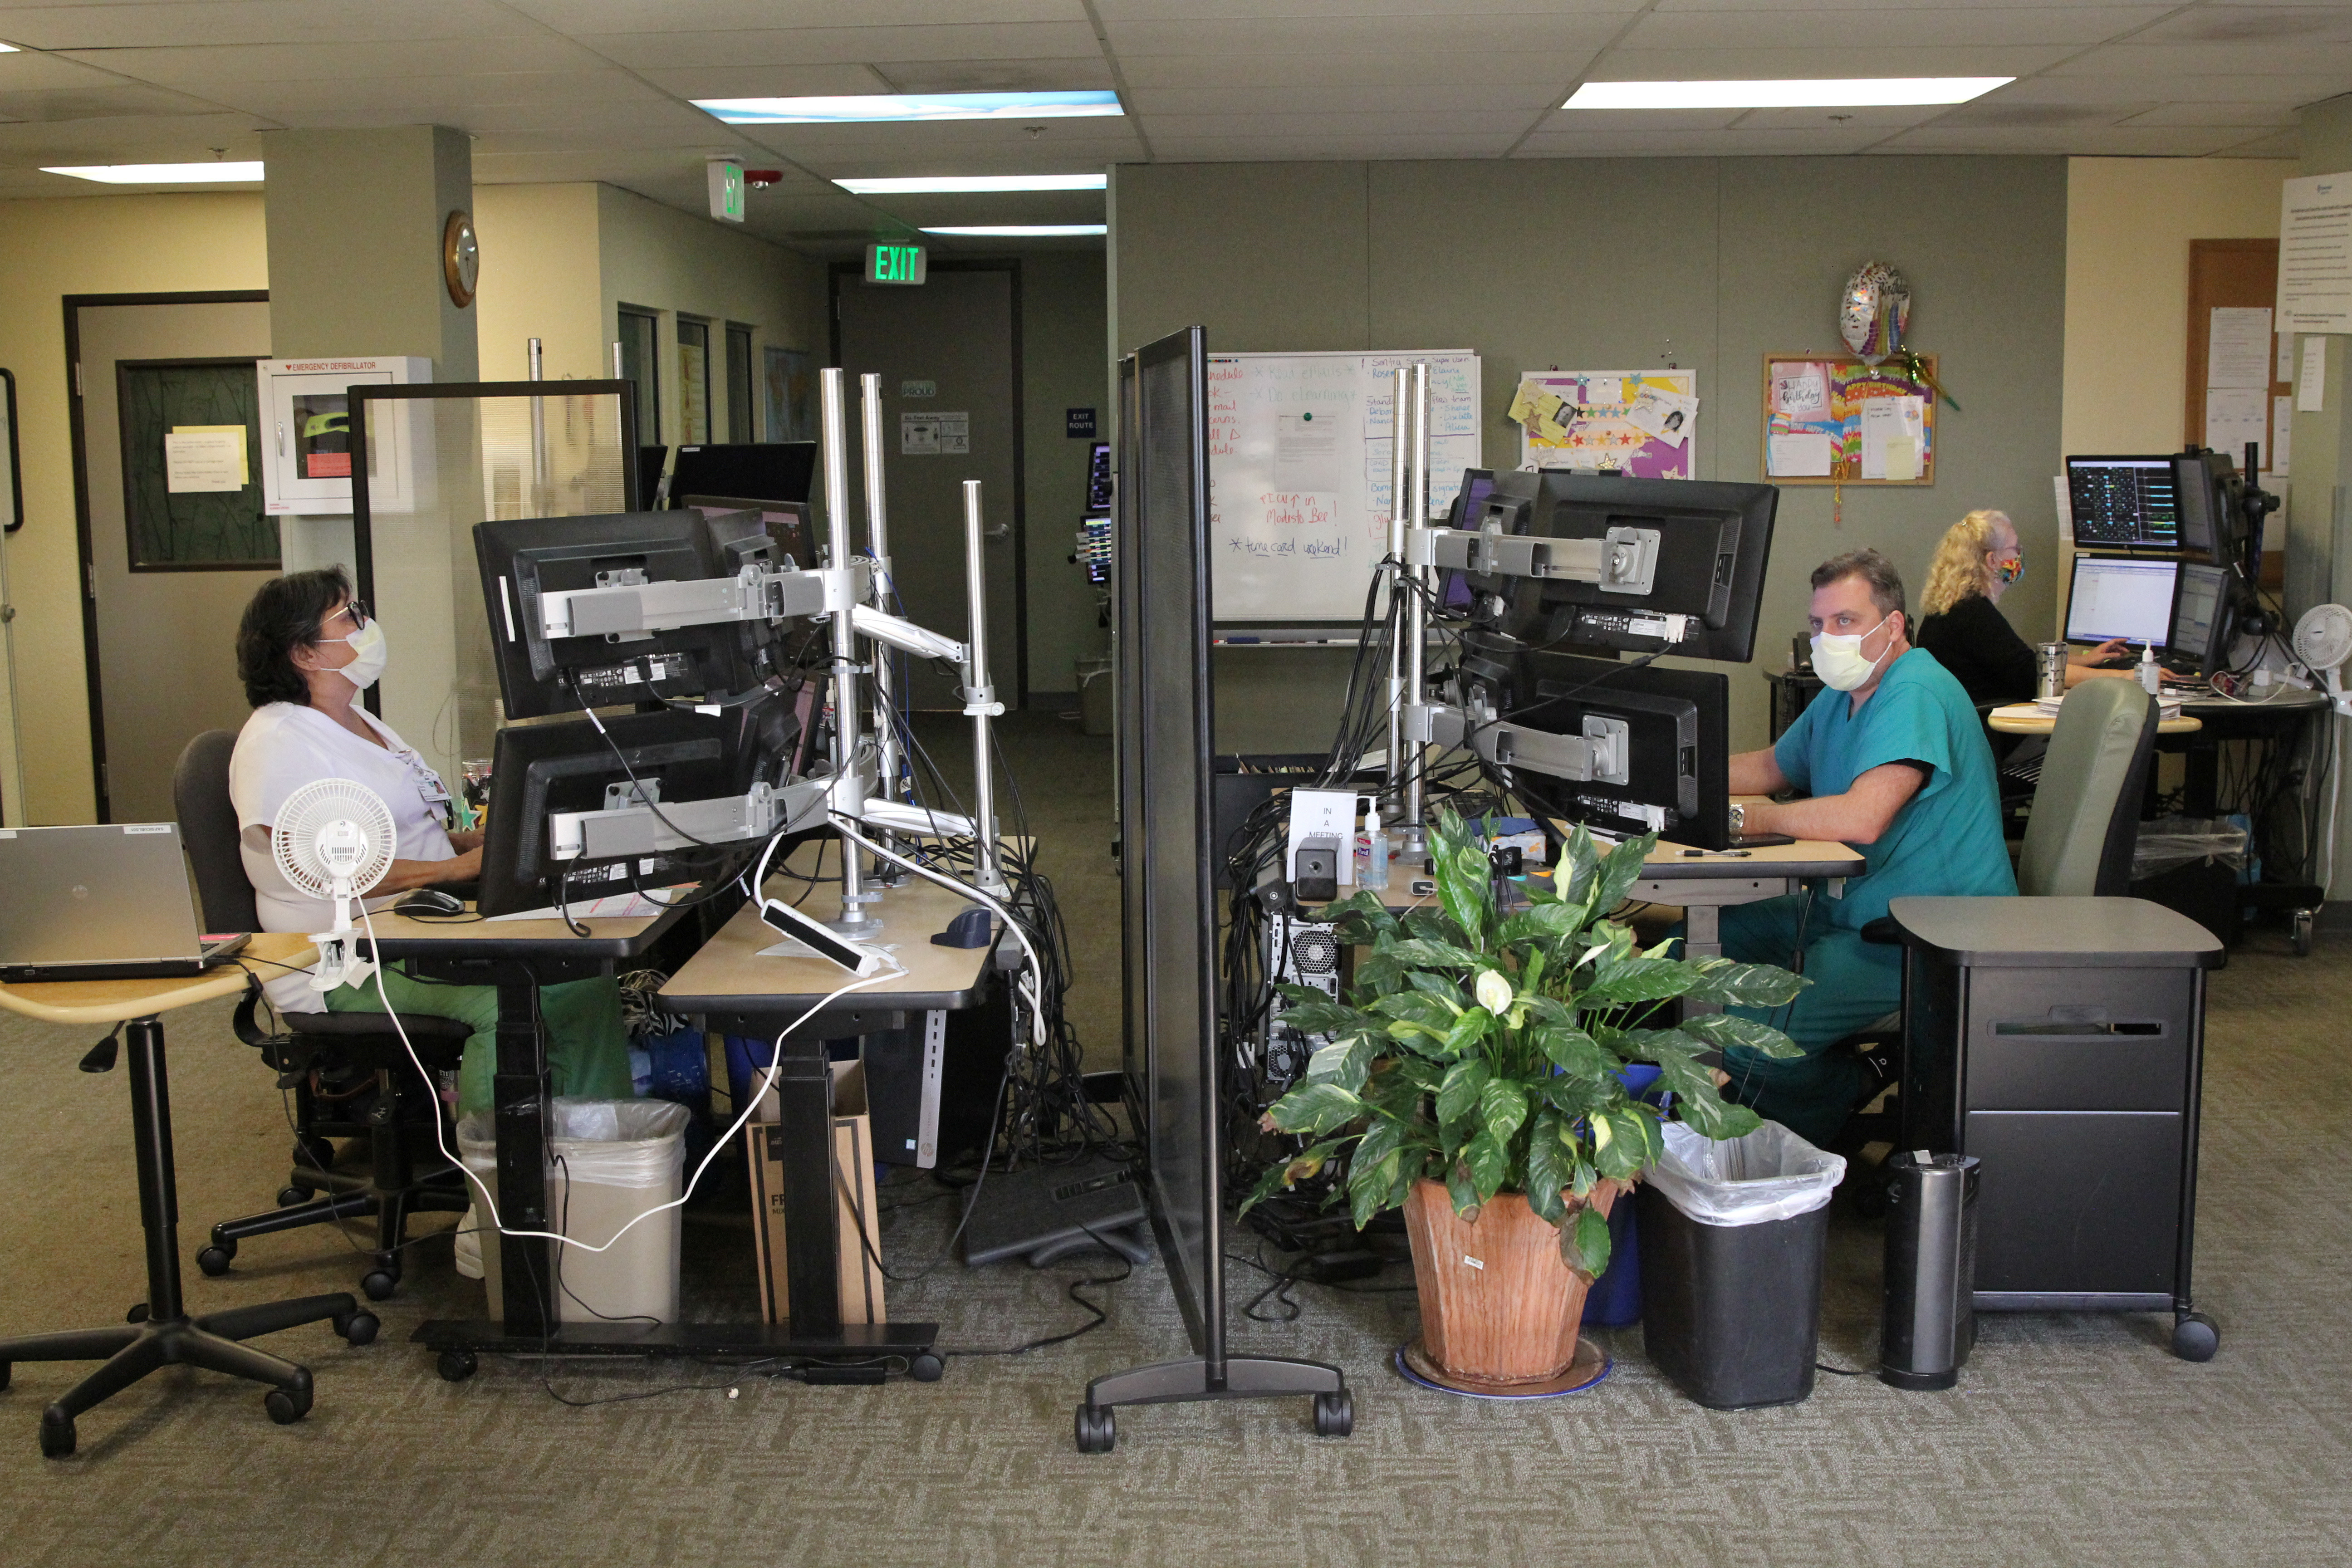 Doctors and nurses staff their stations at the Sutter Health Valley Area eICU, amid the coronavirus disease (COVID-19) outbreak in Sacramento, California, U.S., September 3, 2020. Photo taken September 3, 2020. Nathan Frandino/Reuters - RC2AYI918I3L